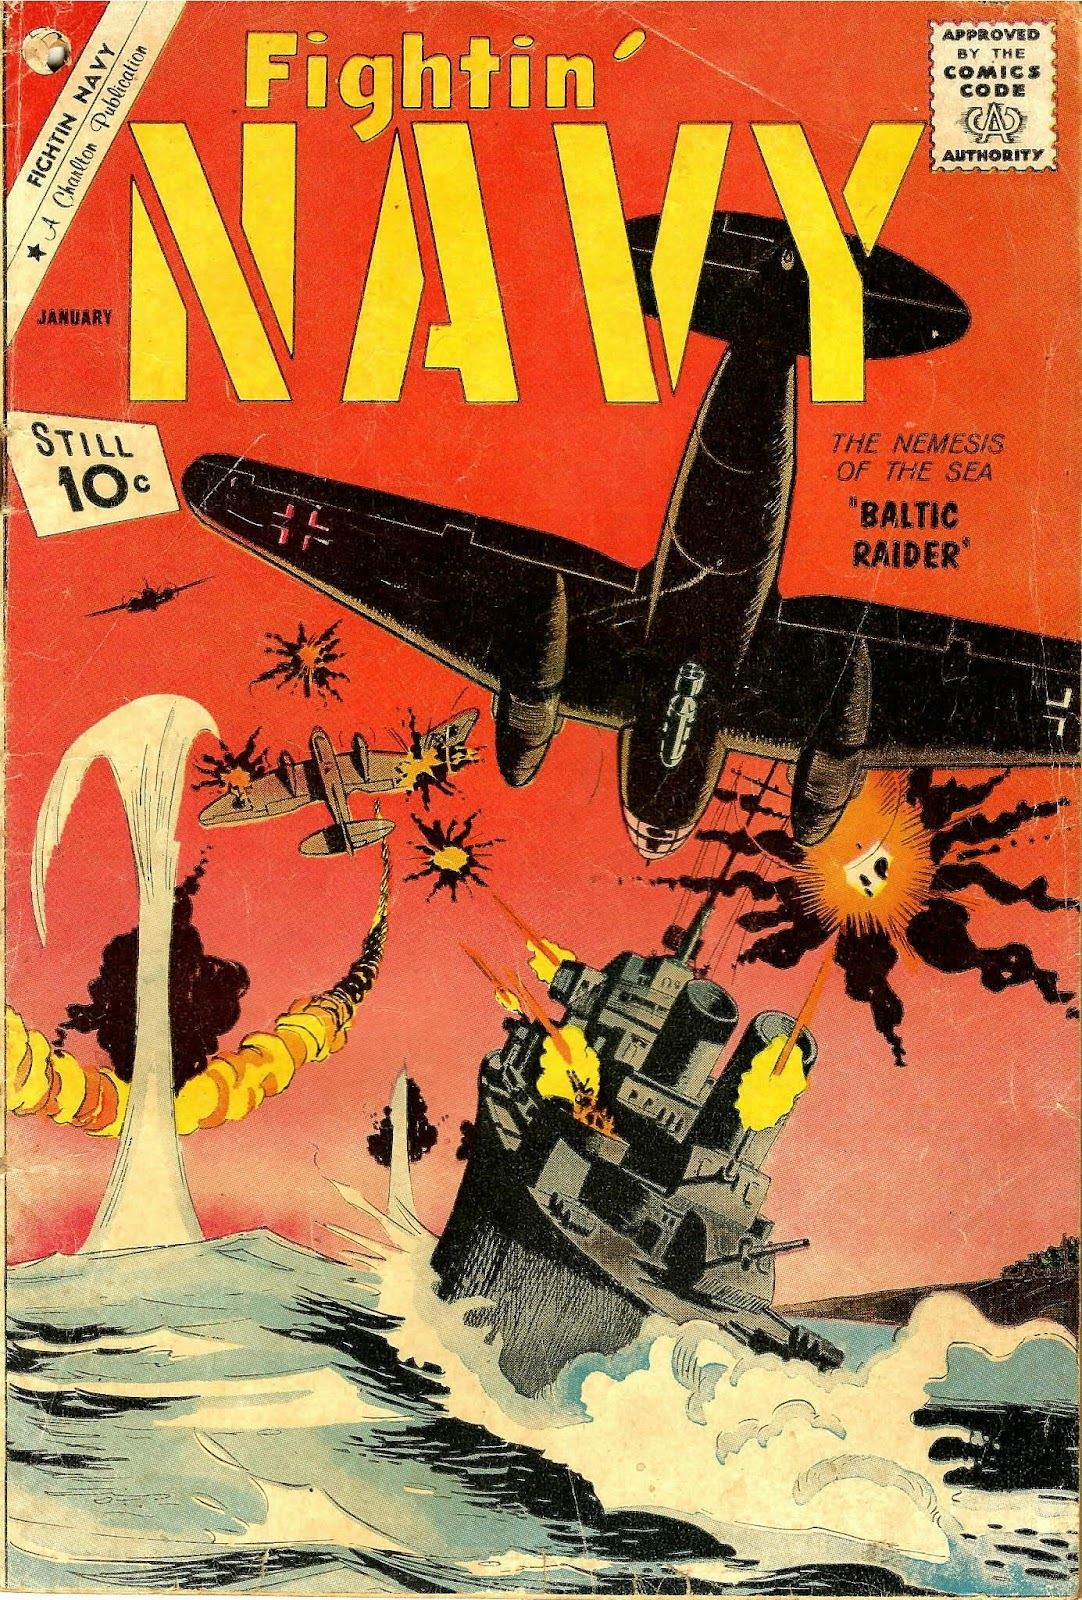 Read online Fightin' Navy comic -  Issue #102 - 1